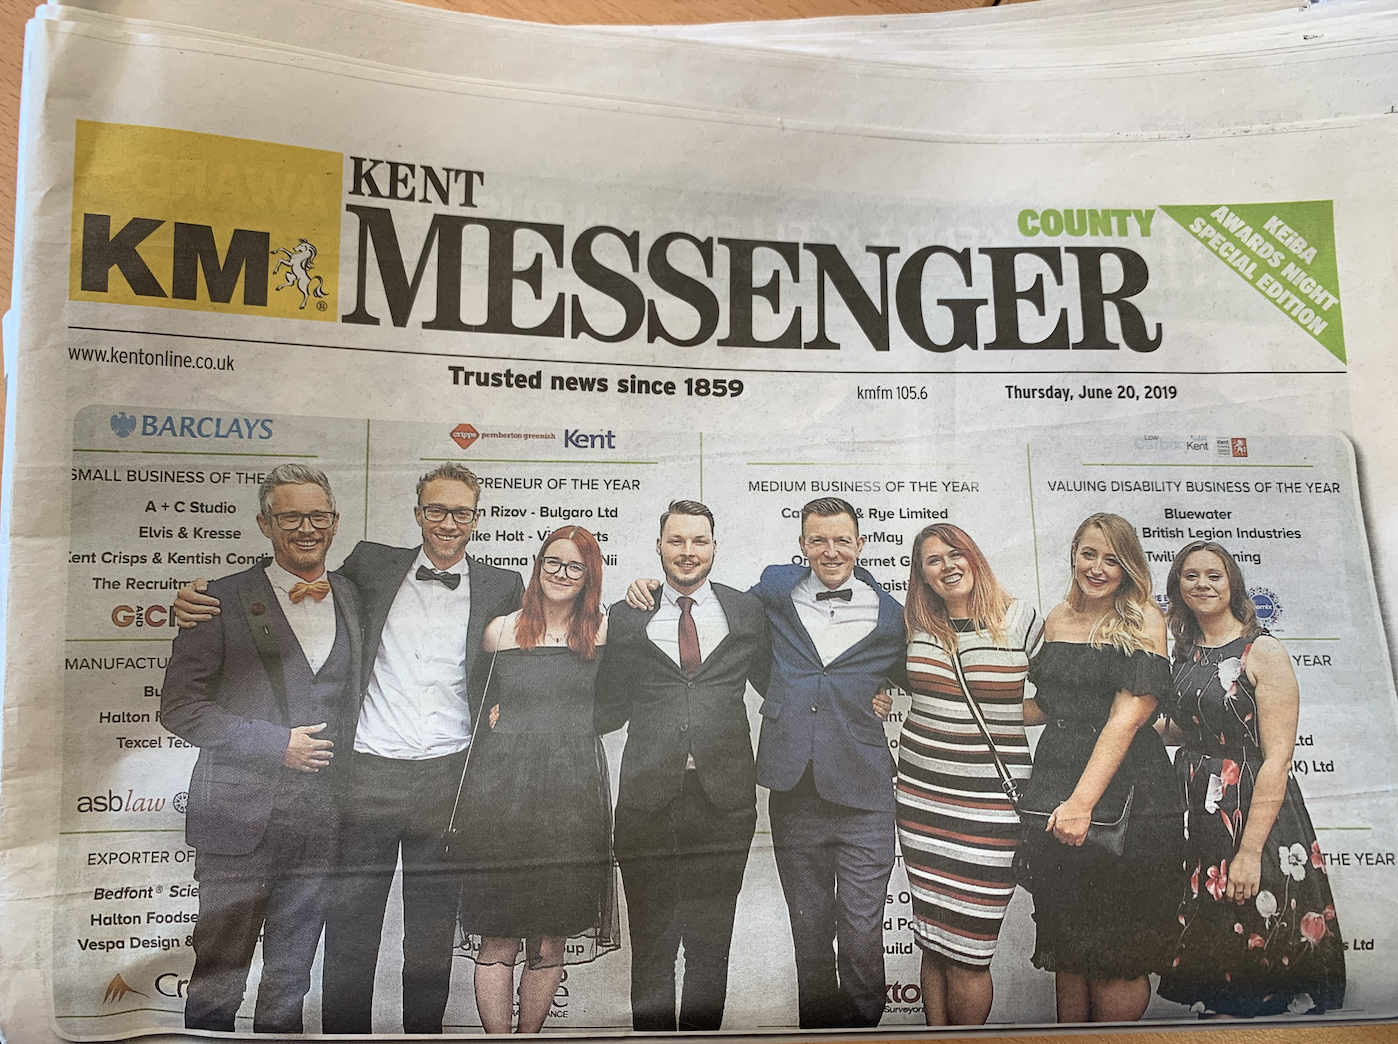 KEiBA Sleeping Giant Media front page of Kent Messenger